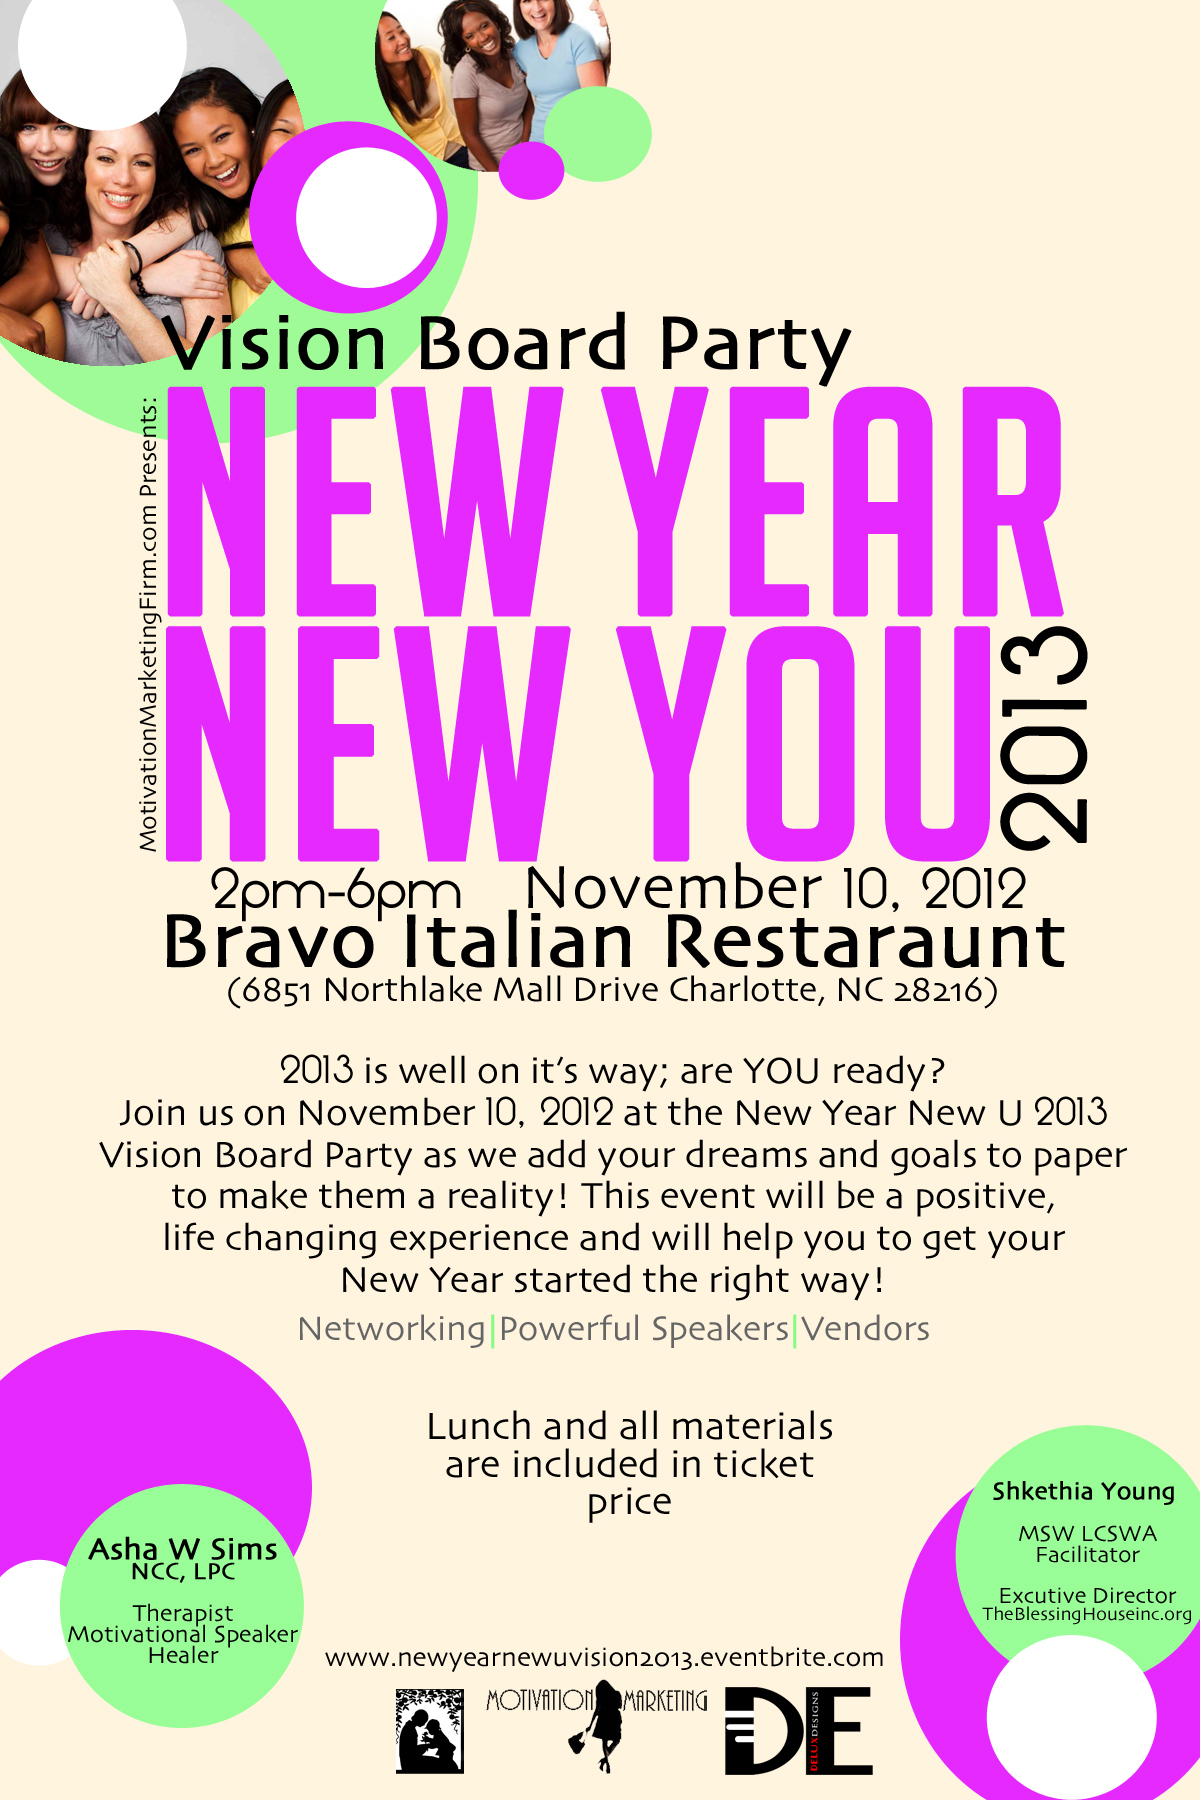 Vision Board Party flyer